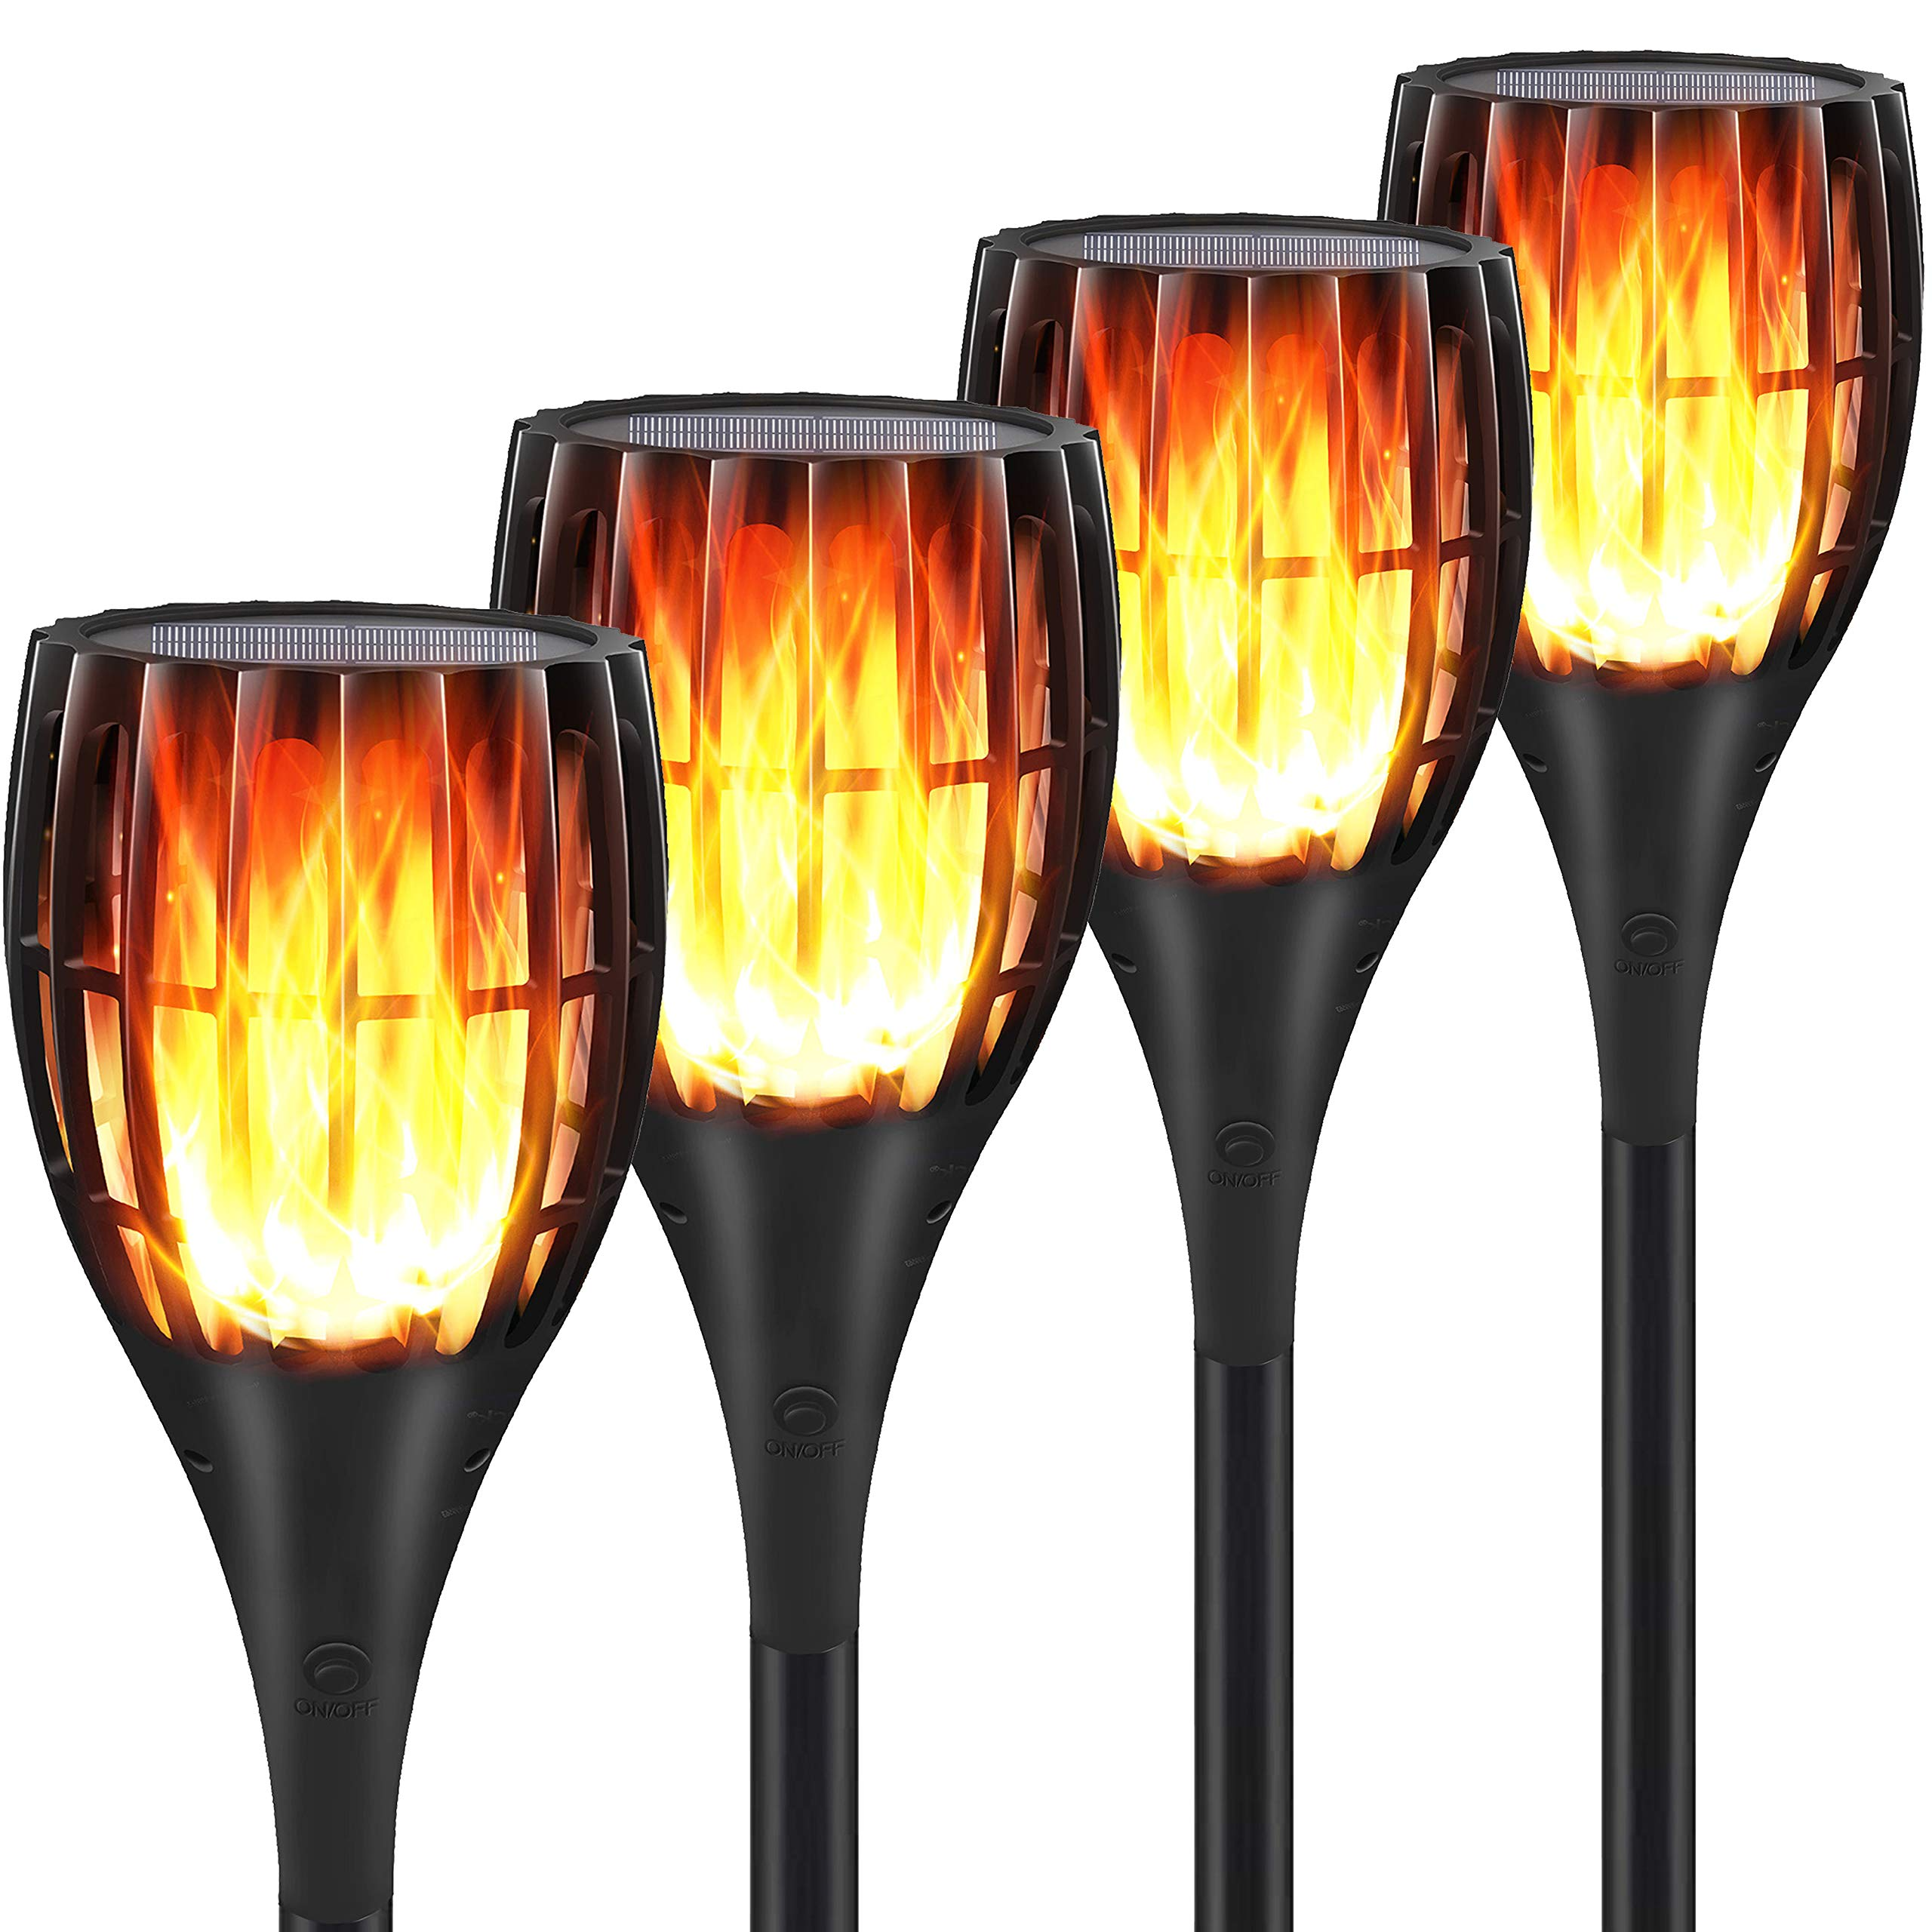 YUJENY Solar Flame Torch Lights Upgraded, Waterproof Dance Flame Lighting Solar Garden Light Outdoor Landscape Decoration Lighting Dusk to Dawn Auto On/Off (4 Pack) by YUJENY